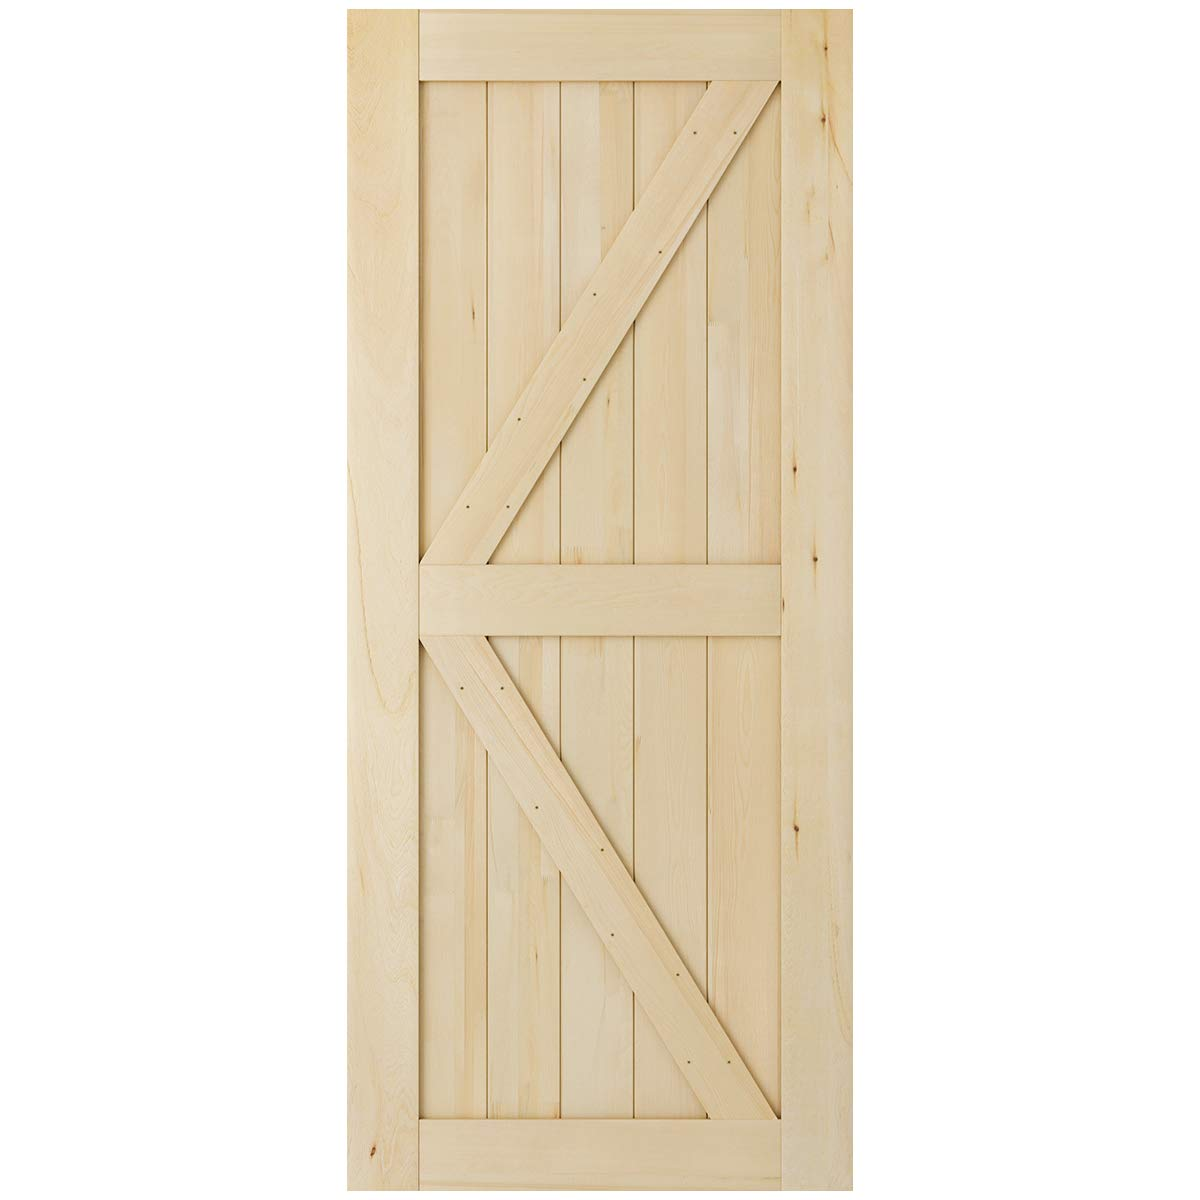 SmartStandard 36in x 84in Sliding Barn Wood Door Pre-Drilled Ready to Assemble, DIY Unfinished Solid Cypress Wood Panelled Slab, Interior Single Door Only, Natural, K-Frame